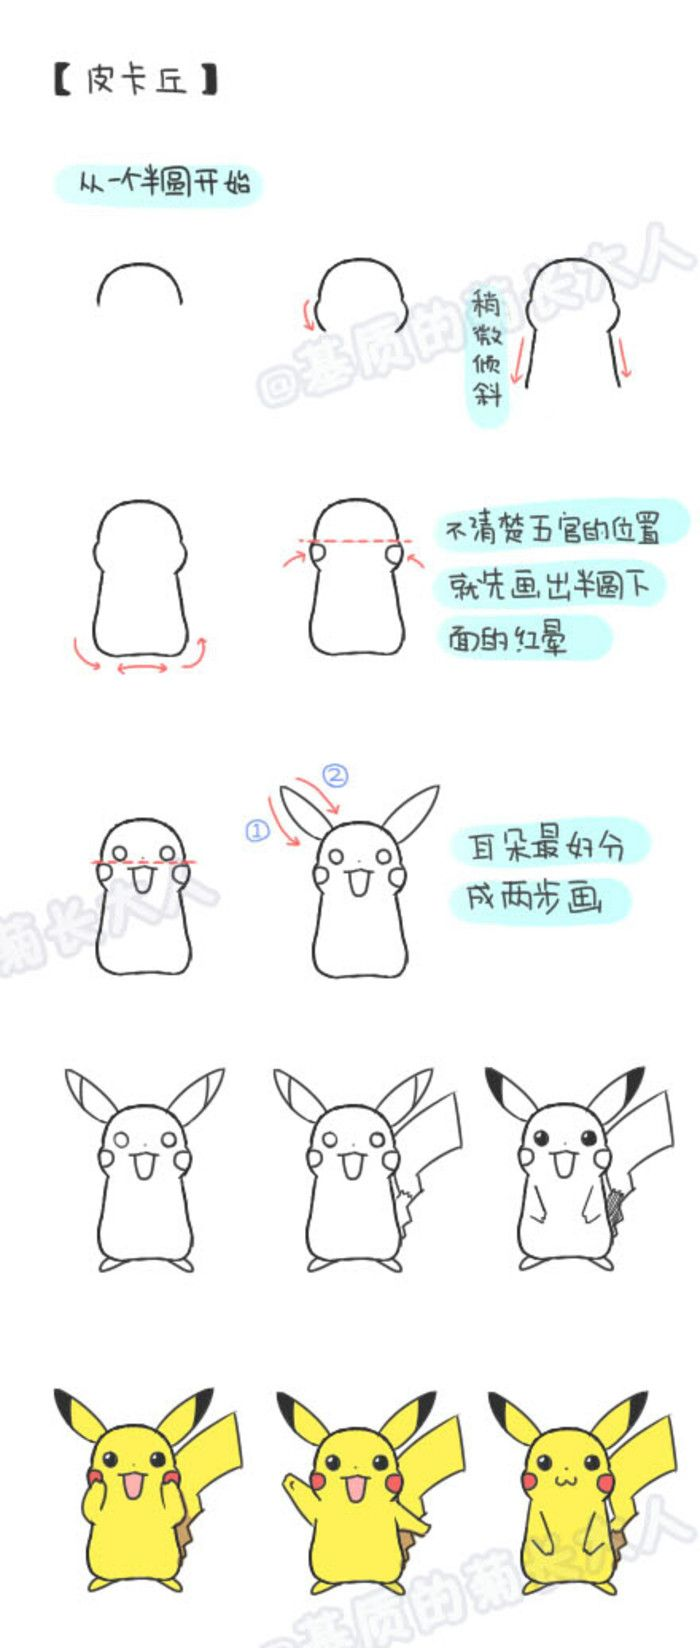 How to draw Pikachu - Hey does anyone still play Pokémon GO?